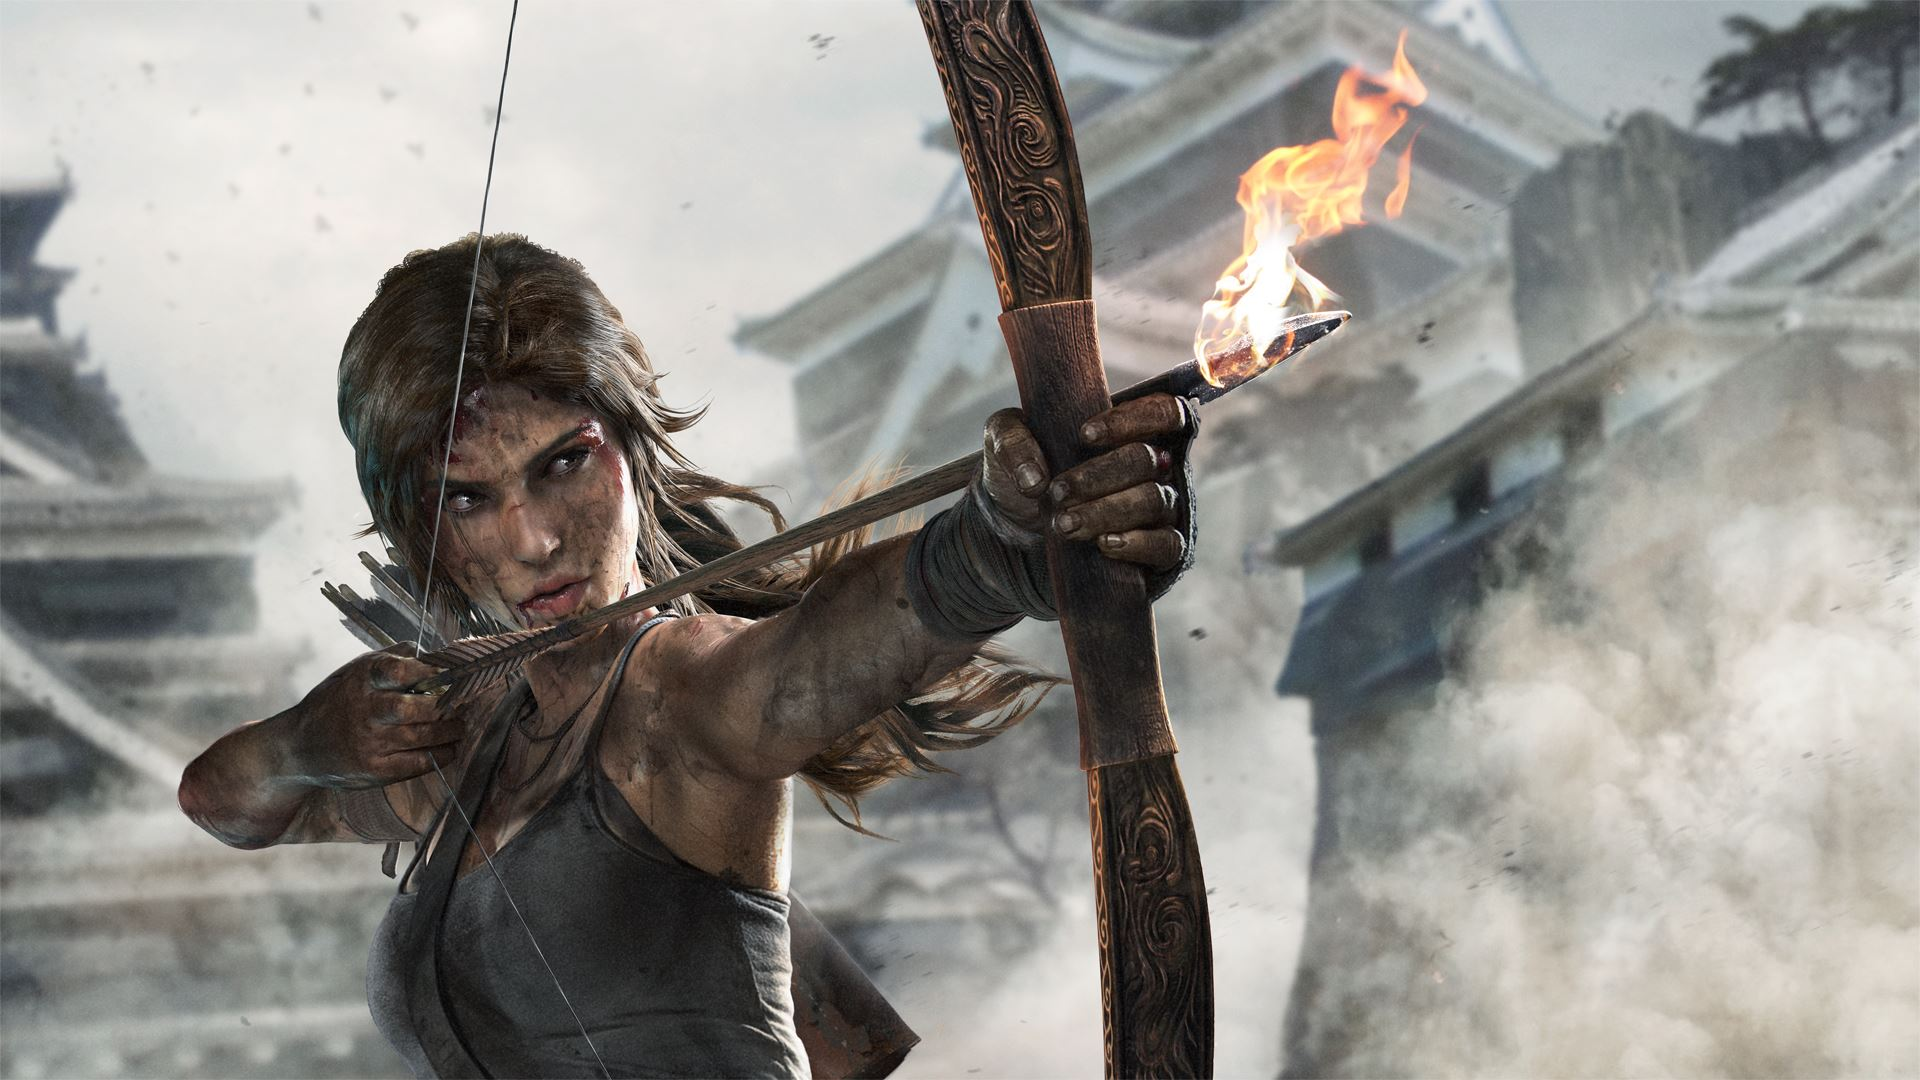 Warner Brothers Might Be Looking To Reboot Tomb Raider In 2017